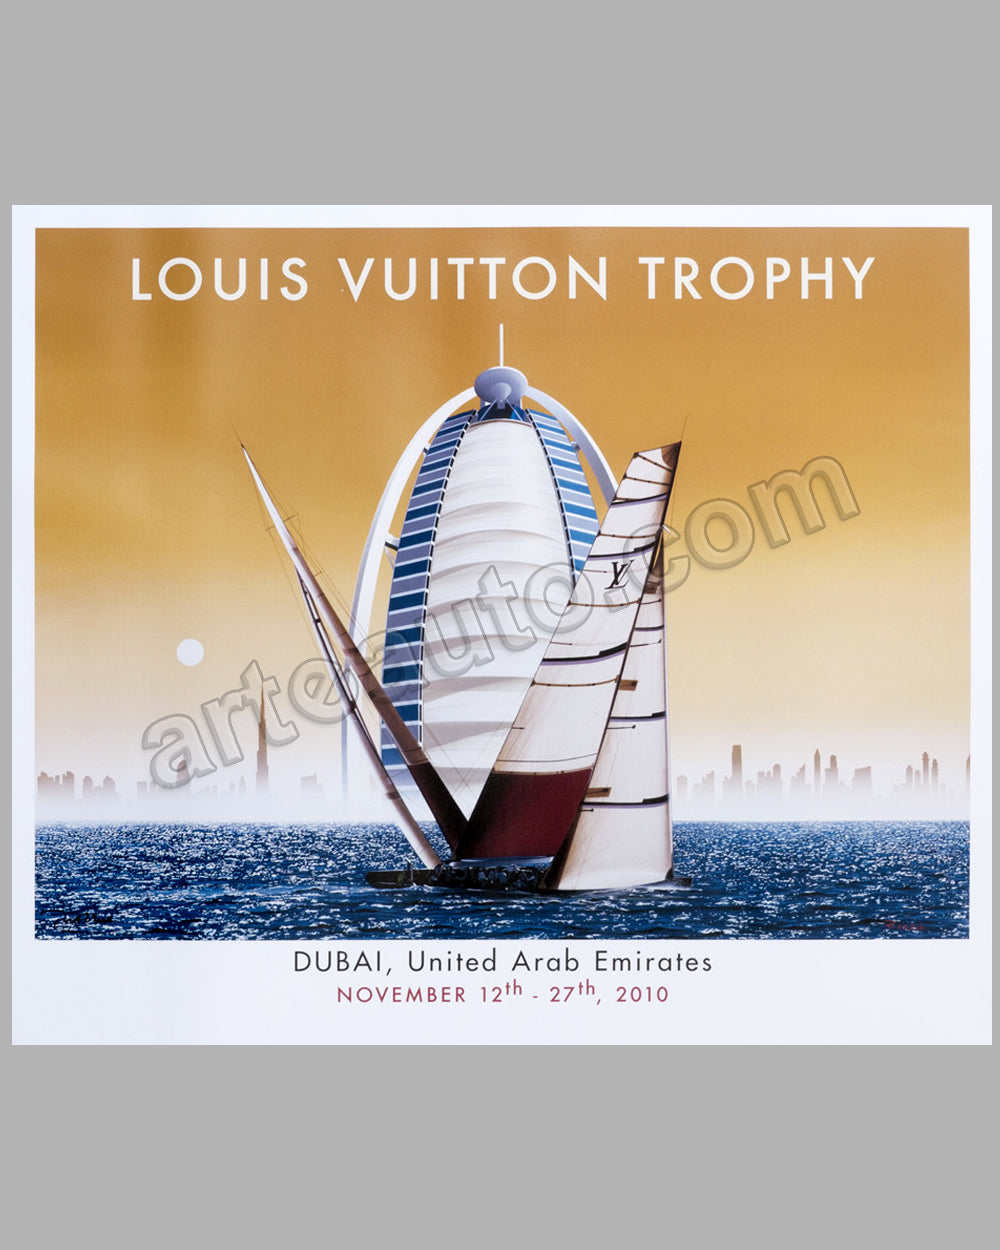 Louis Vuitton Trophy - Dubai - 2010 large poster by Razzia